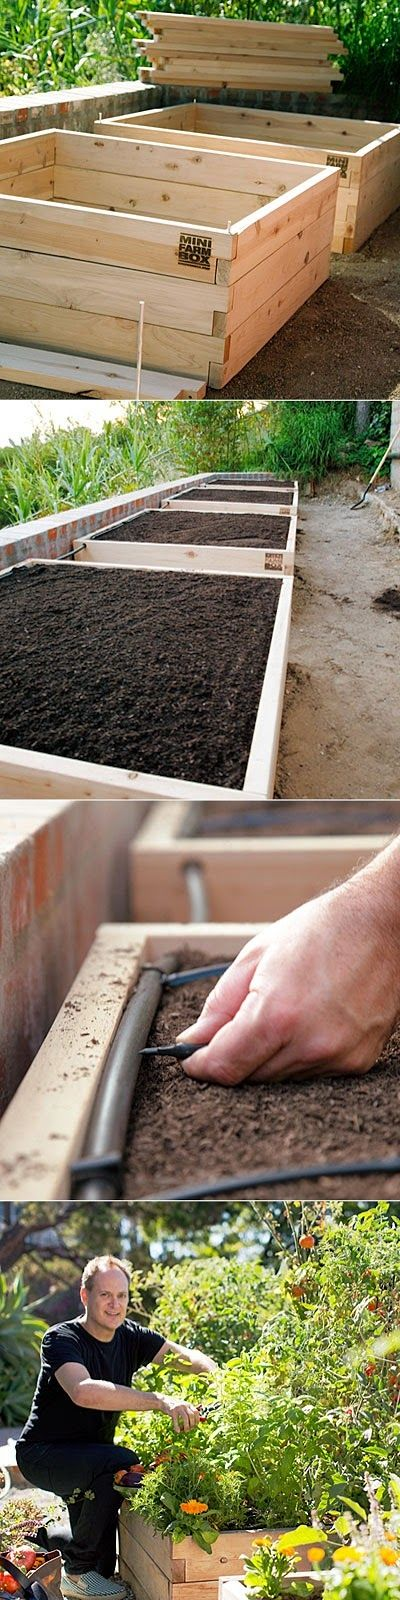 Raised-bed vegetable garden. This would be awesome! Fresh veggies without weeding or watering :) that's my kinda garden! :)